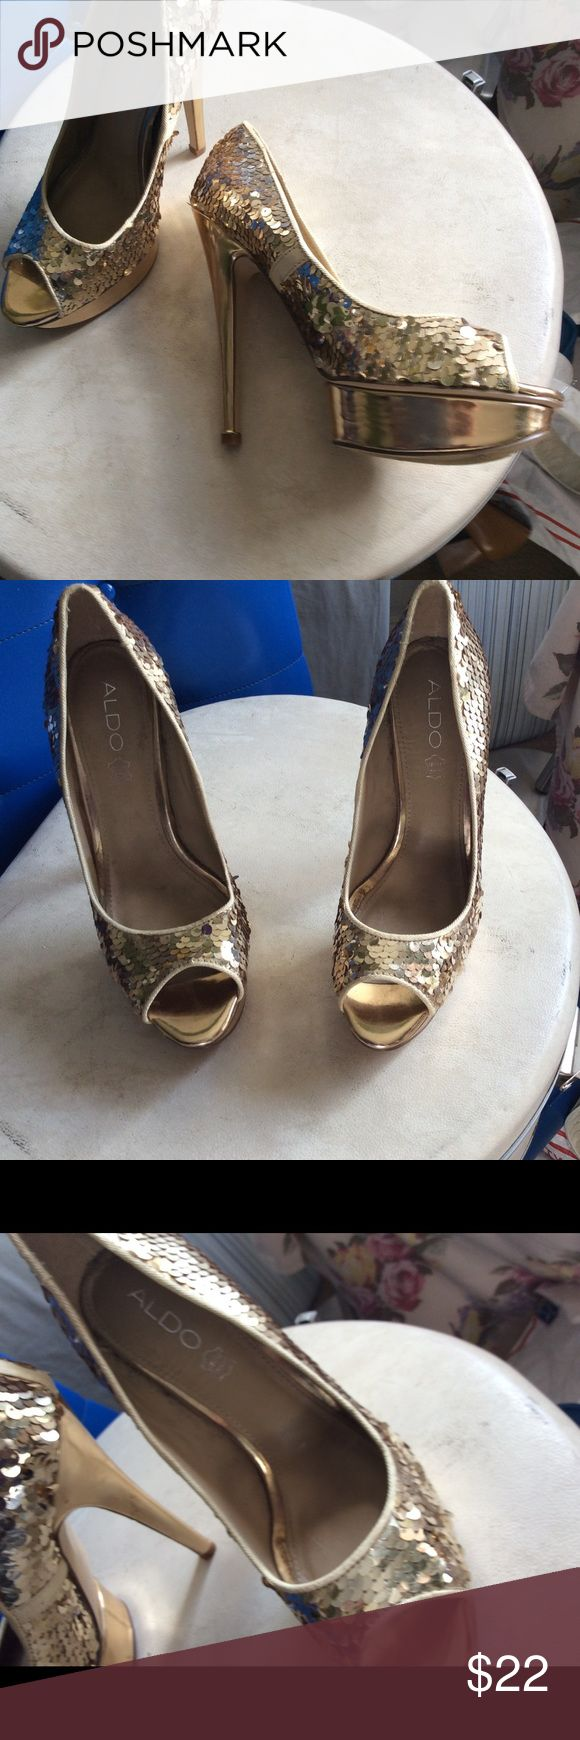 """Gold sequin peep toe pumps mermaid sequin pattern. ALDO GOLD SEQUIN PEEP OPEN TOE WOMEN'S HIGH HEEL PLATFORM   These are used but in excellent condition, these shoes look ultra glamorous.  Platform is 1"""" tall Heels are about 6"""" tall Size 38 Europe size Measurements: approx. 9 3/4"""" long inside, 2 3/4"""" wide outsoles, 6"""" heels Aldo Shoes Platforms"""